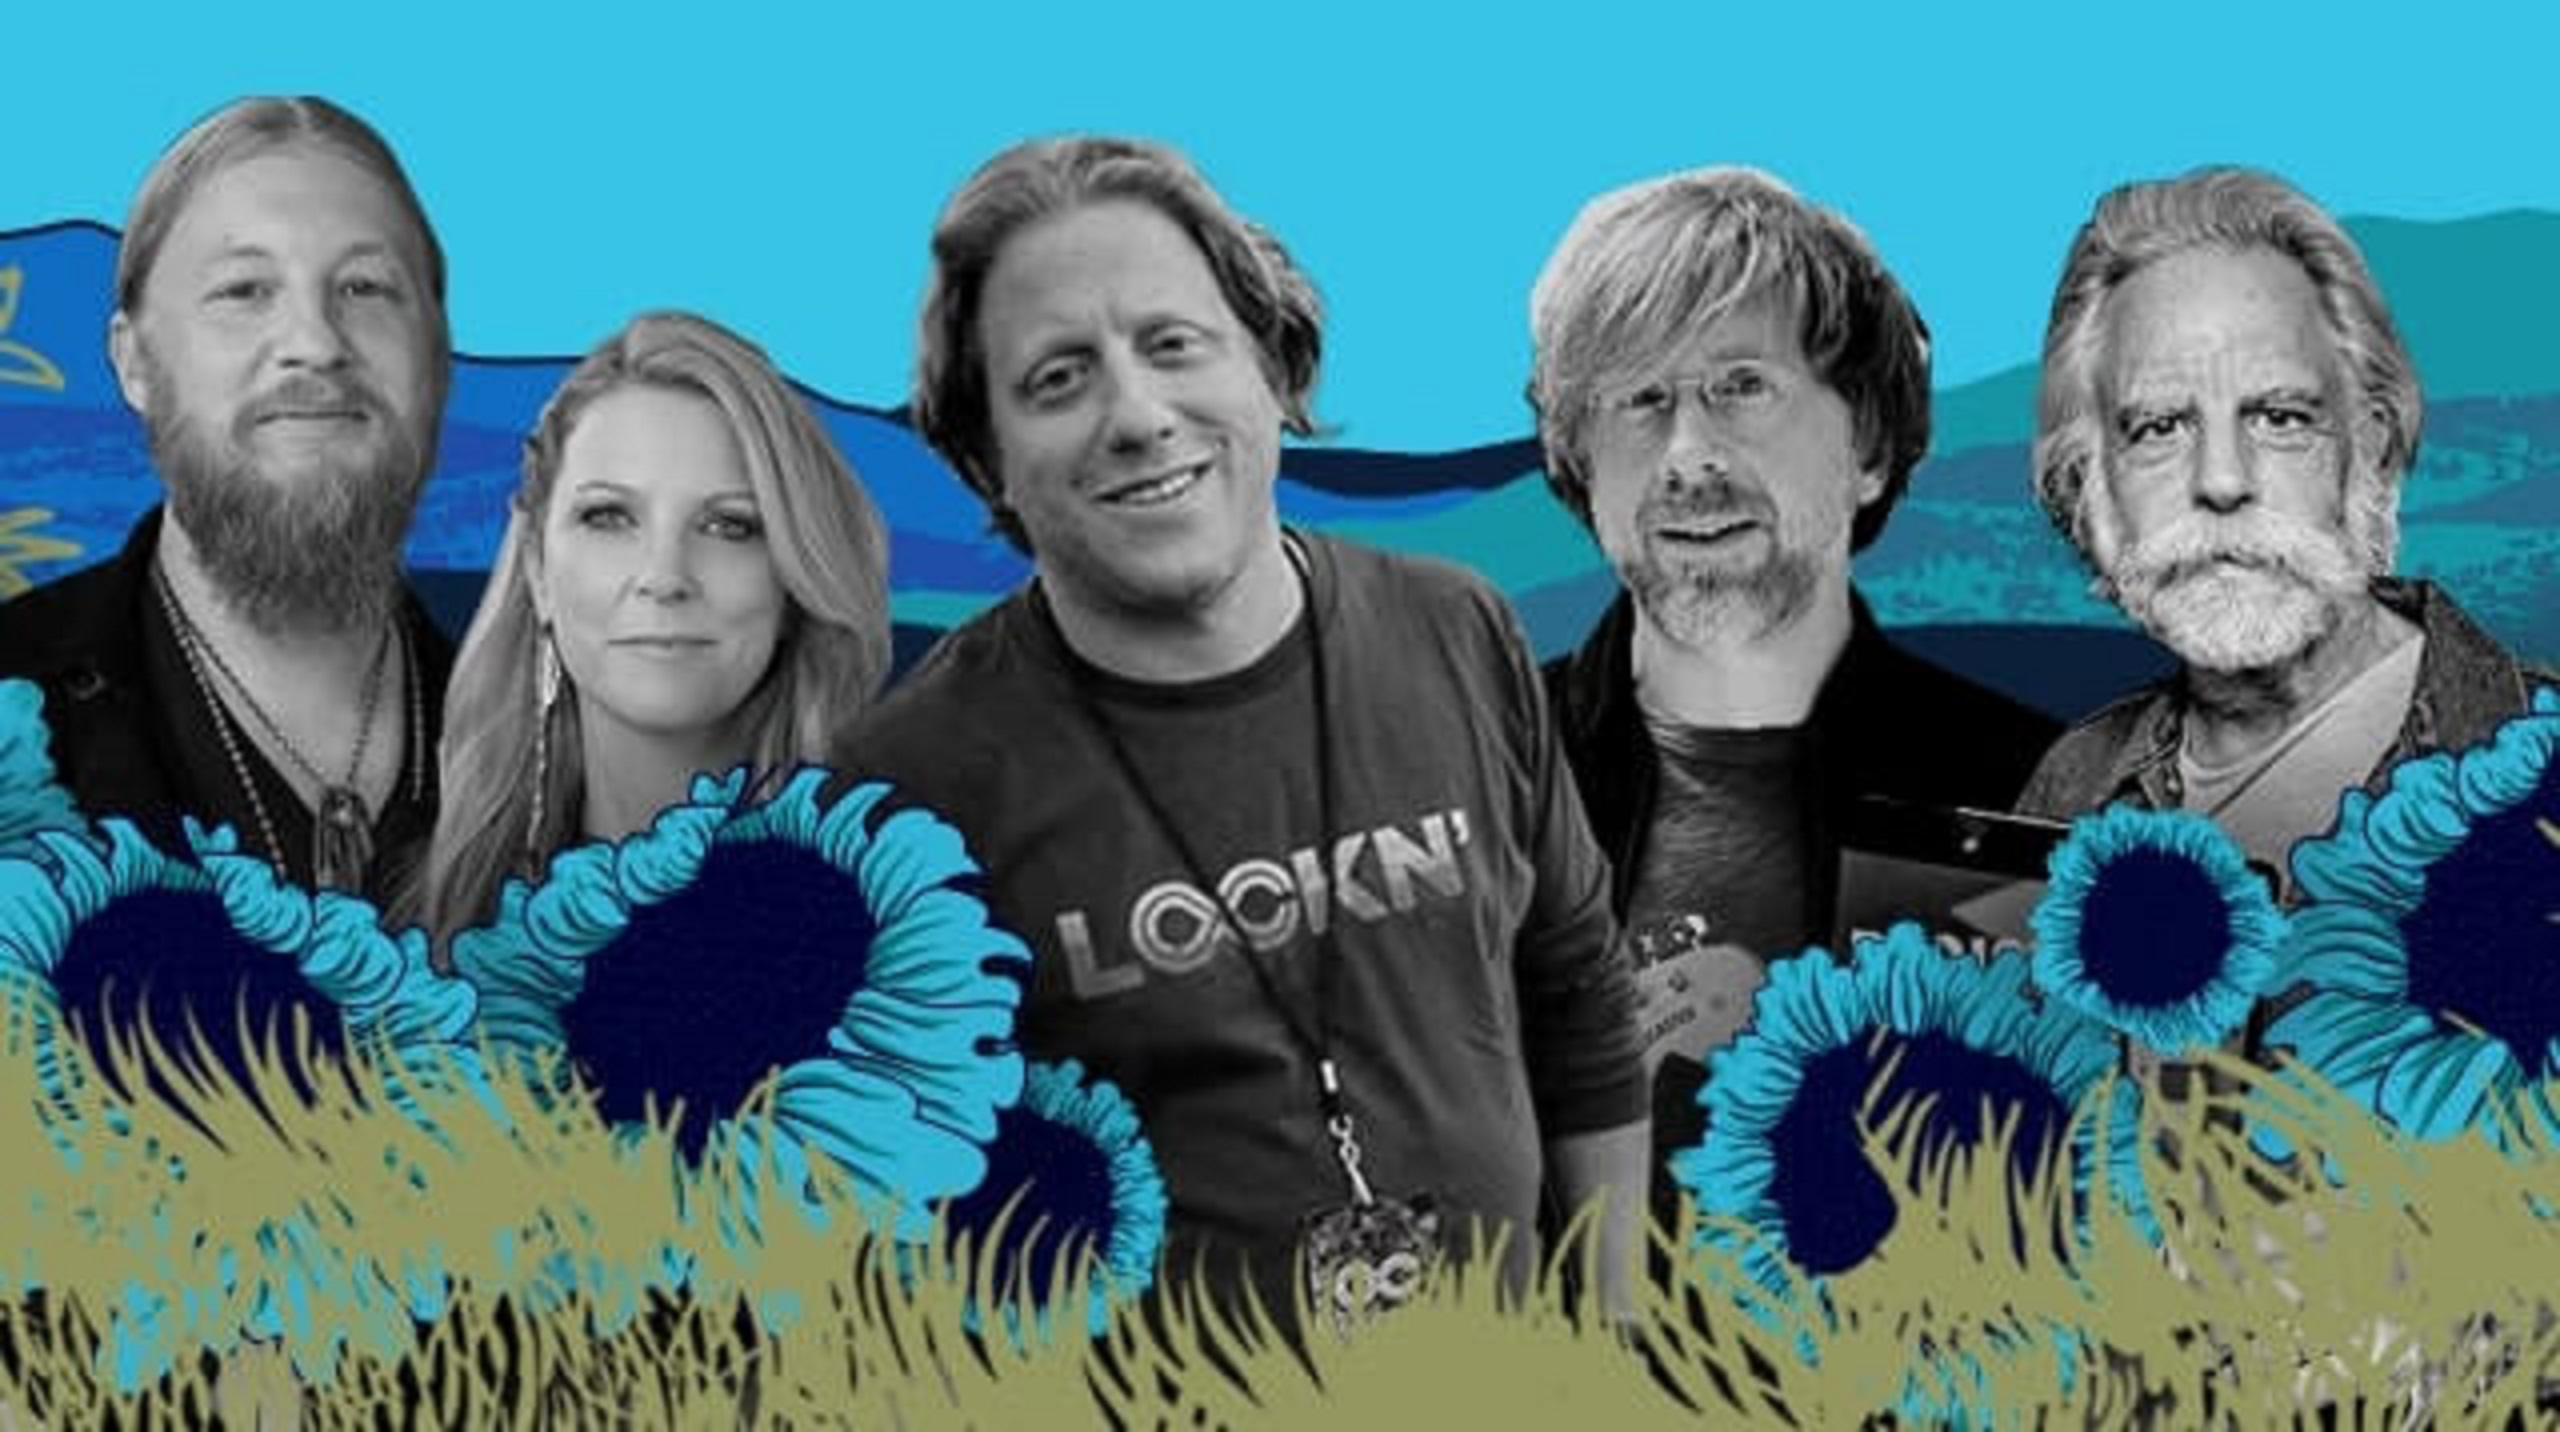 Meet Bob Weir, Derek + Susan, & Trey as Peter Shapiro's Guest at LOCKN'